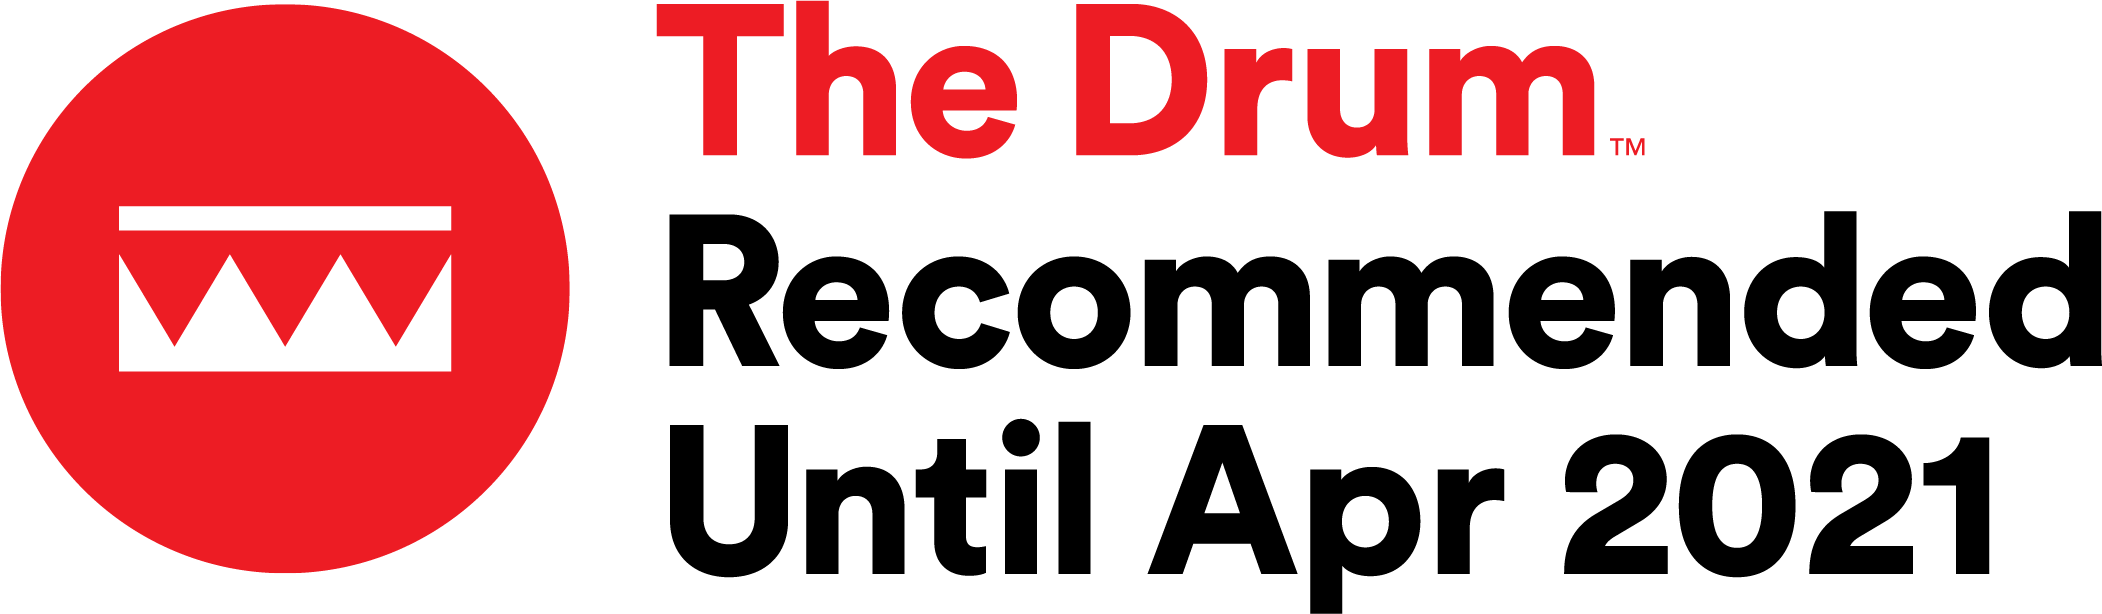 The Drum Recommended Agency logo